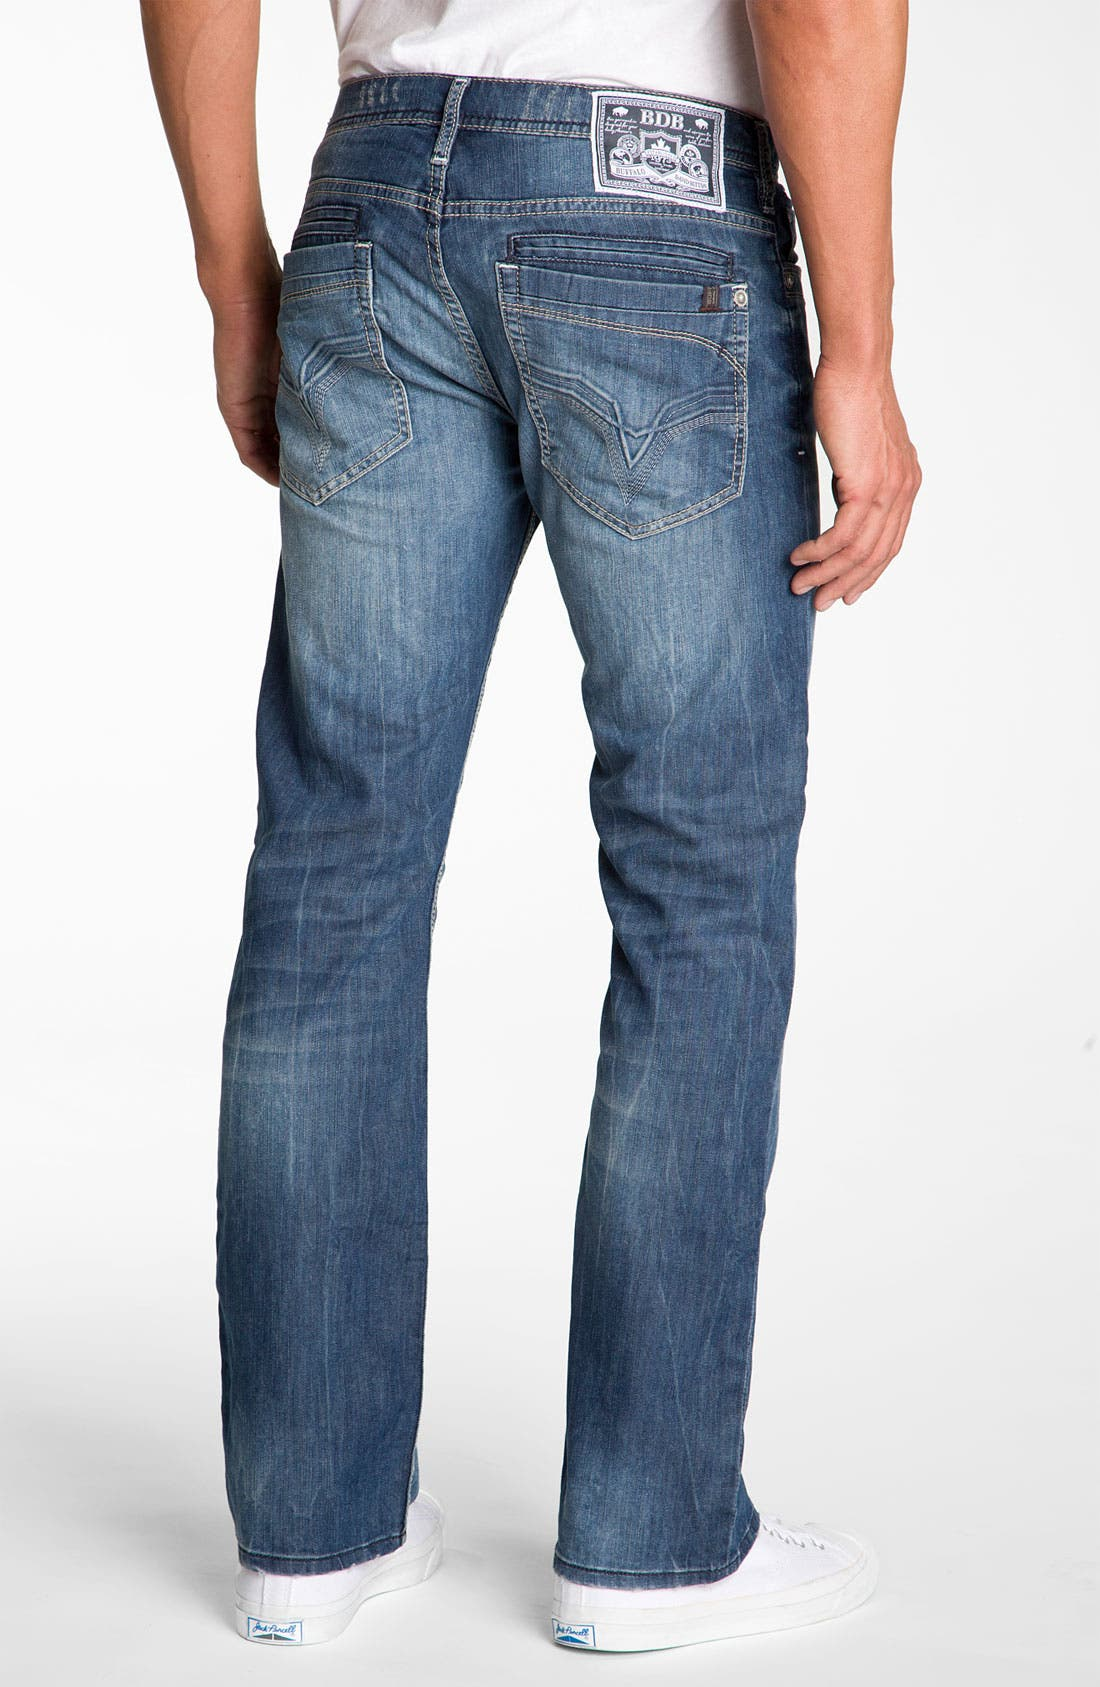 Alternate Image 1 Selected - Buffalo Jeans 'Dixel' Straight Leg Jeans (Aged & Distressed Wash)